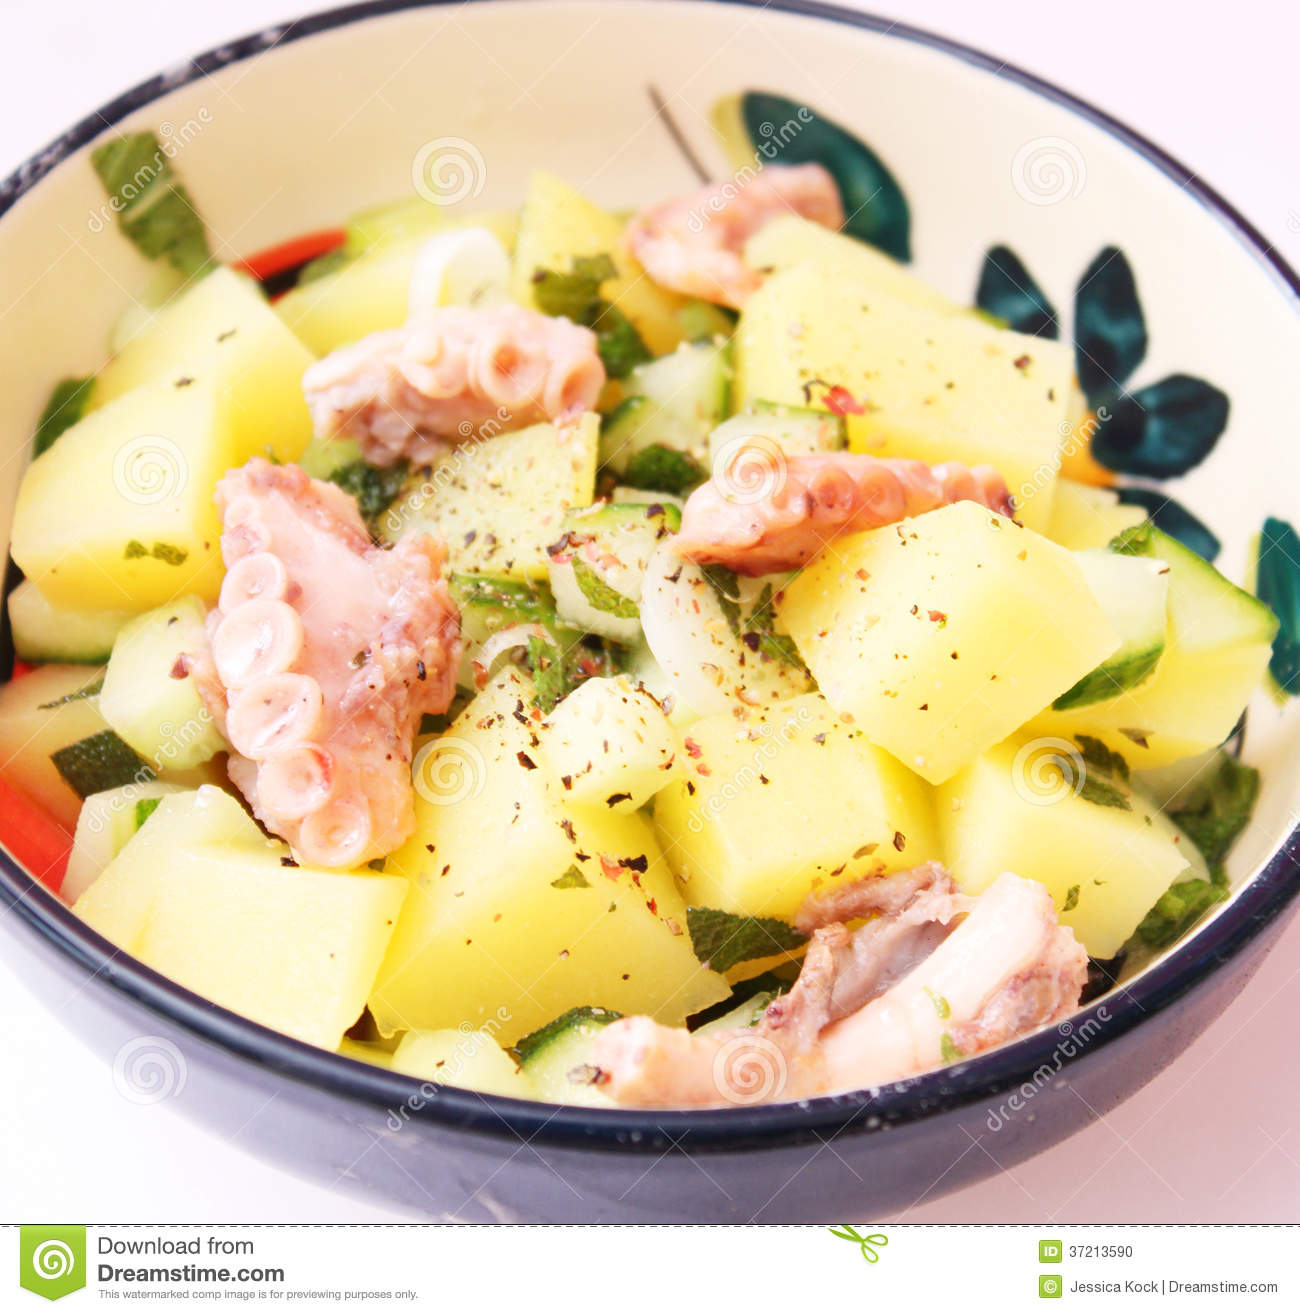 salade des pommes de terre avec le poulpe photo stock image du cro te seafood 37213590. Black Bedroom Furniture Sets. Home Design Ideas